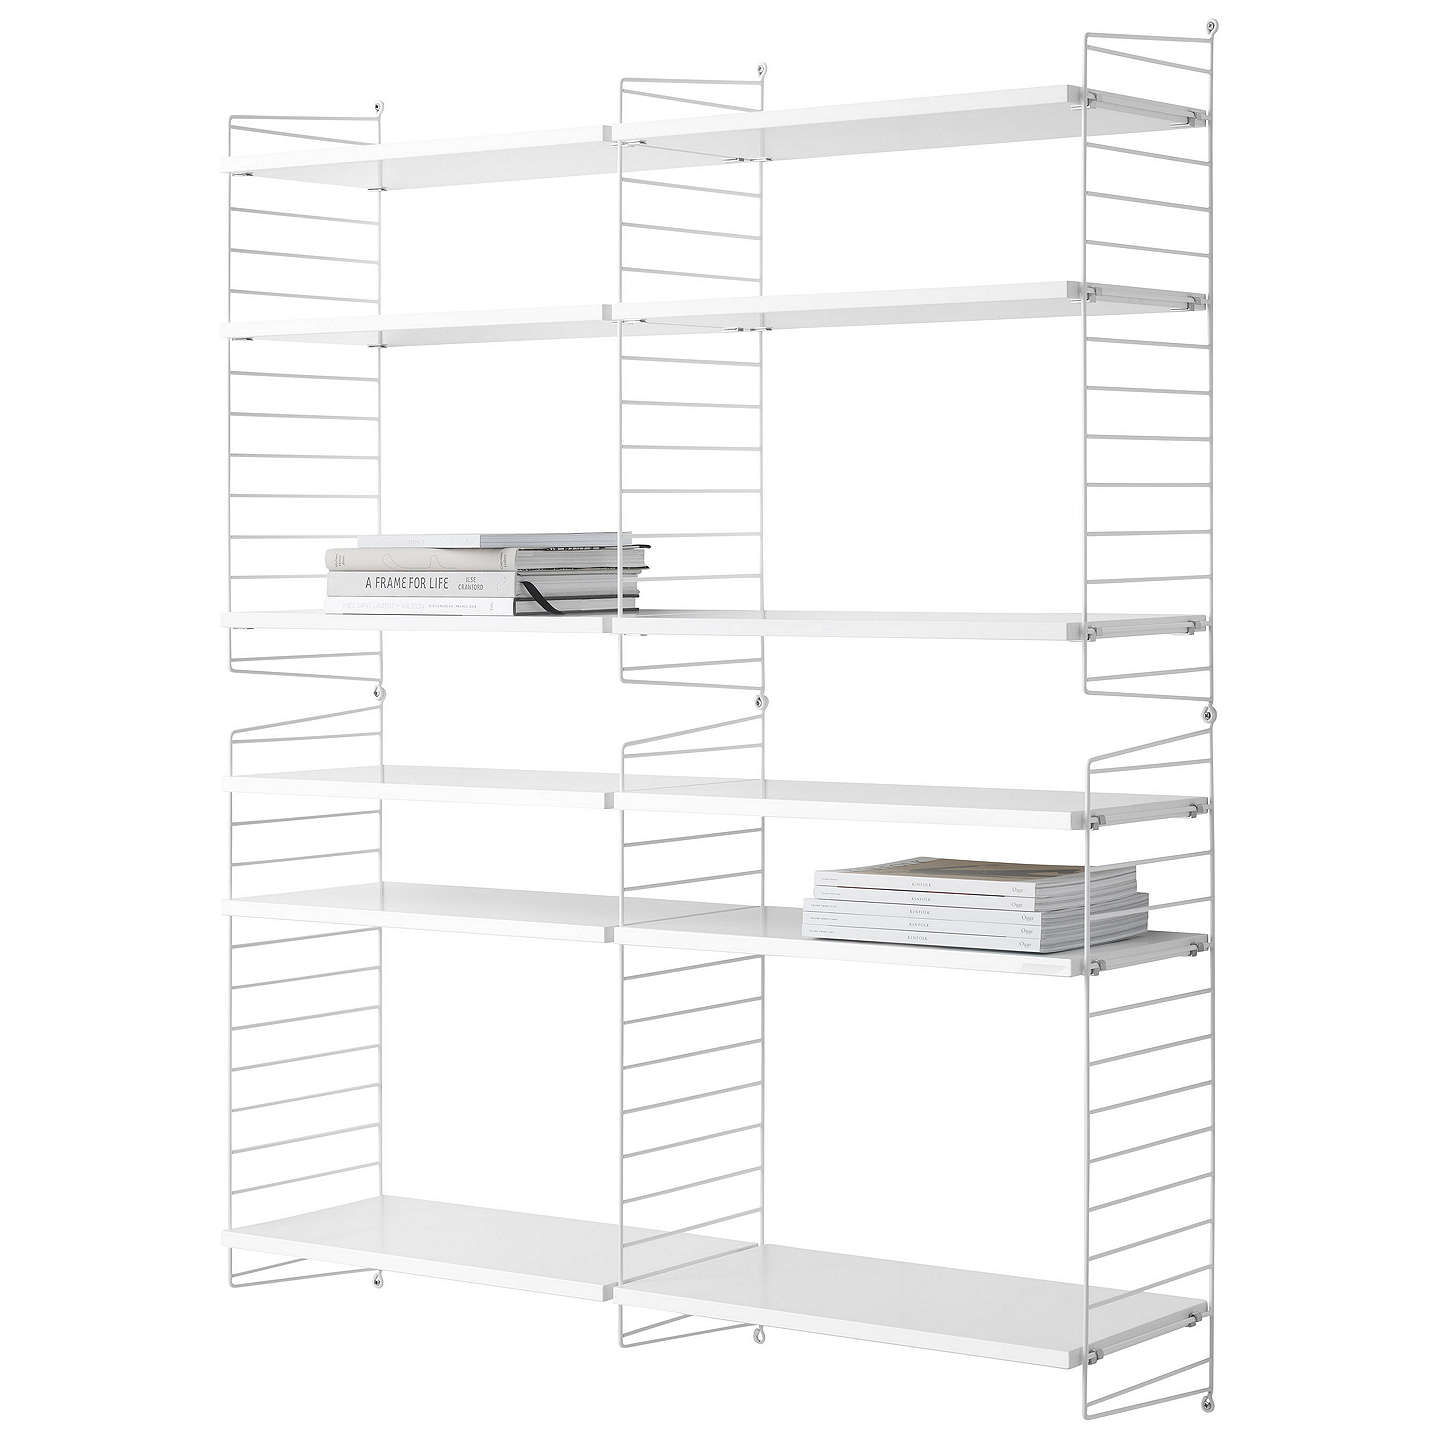 string Shelving Unit and Wall Fastened Side Racks White at